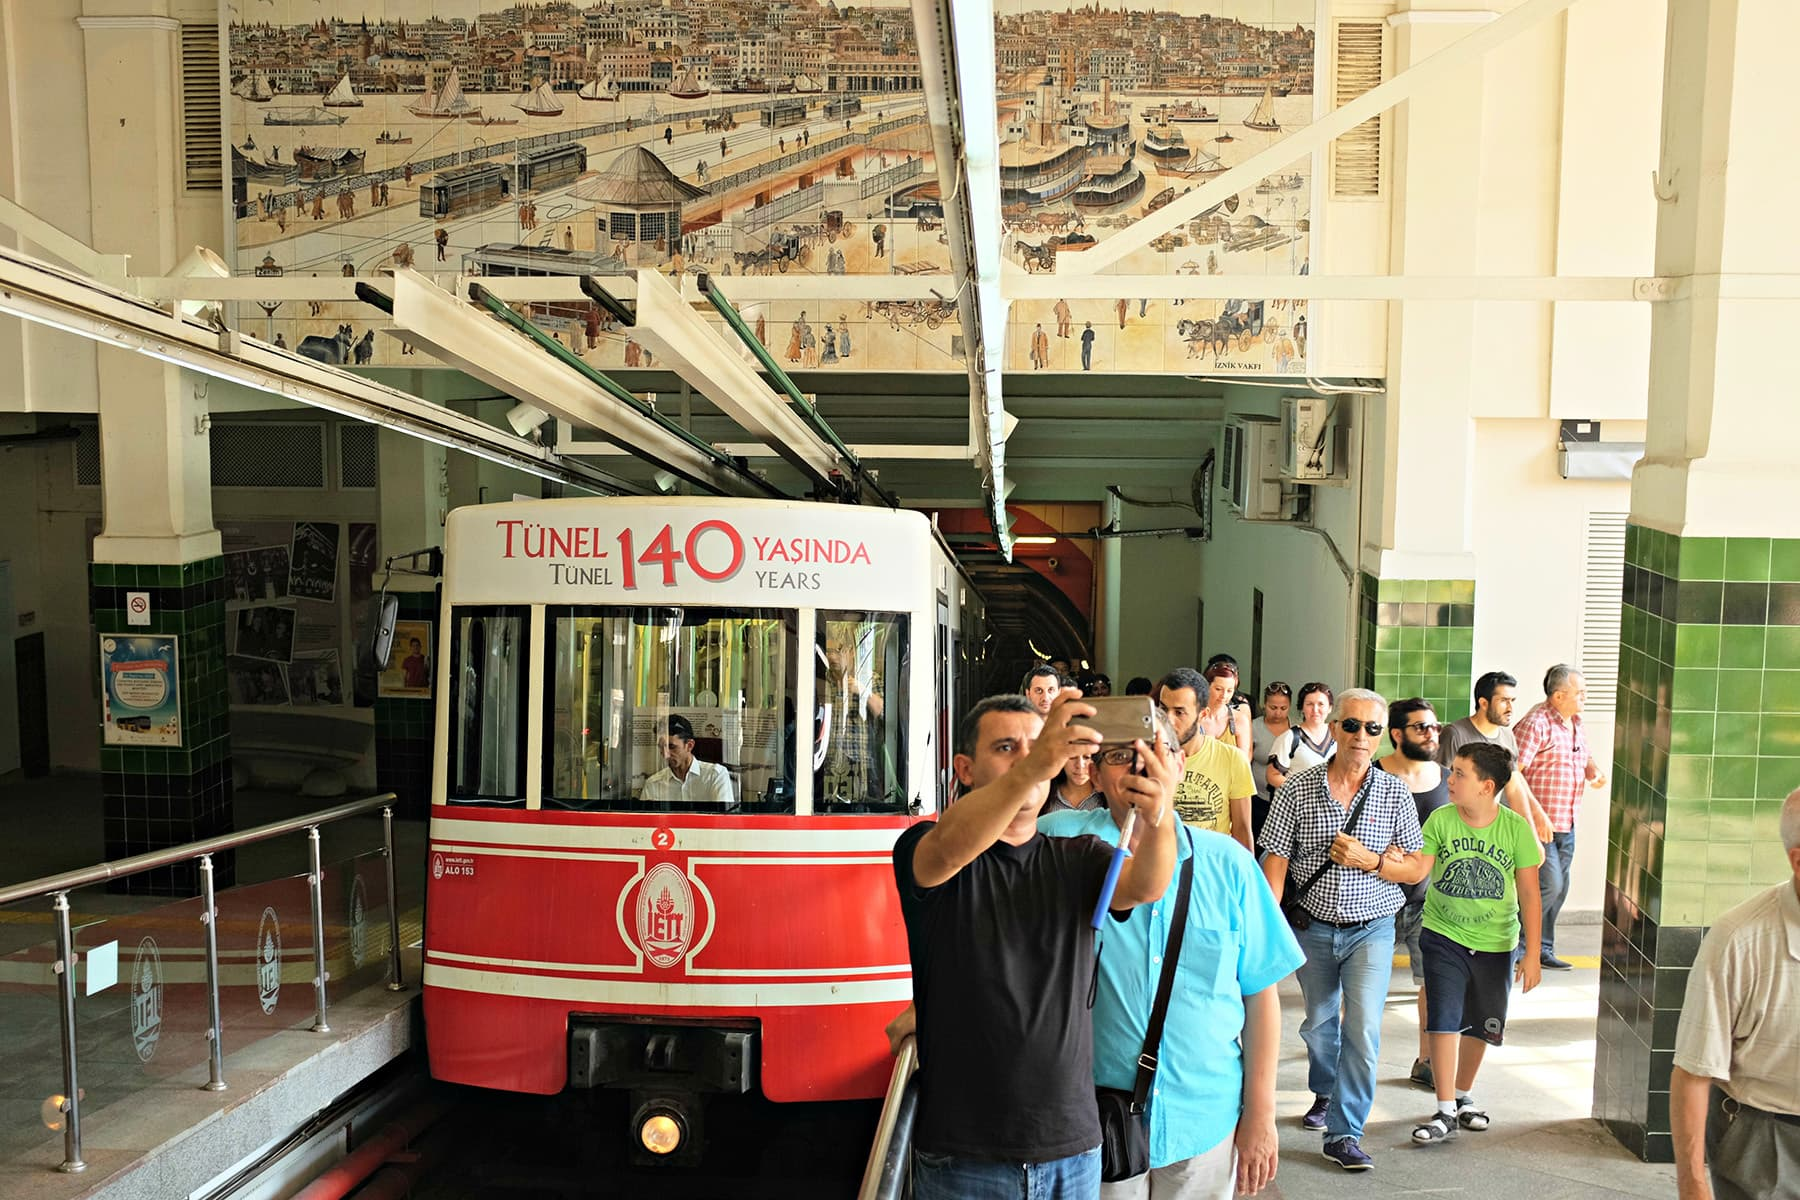 People pose for a selfie in front of tram which took us through the tunnel.